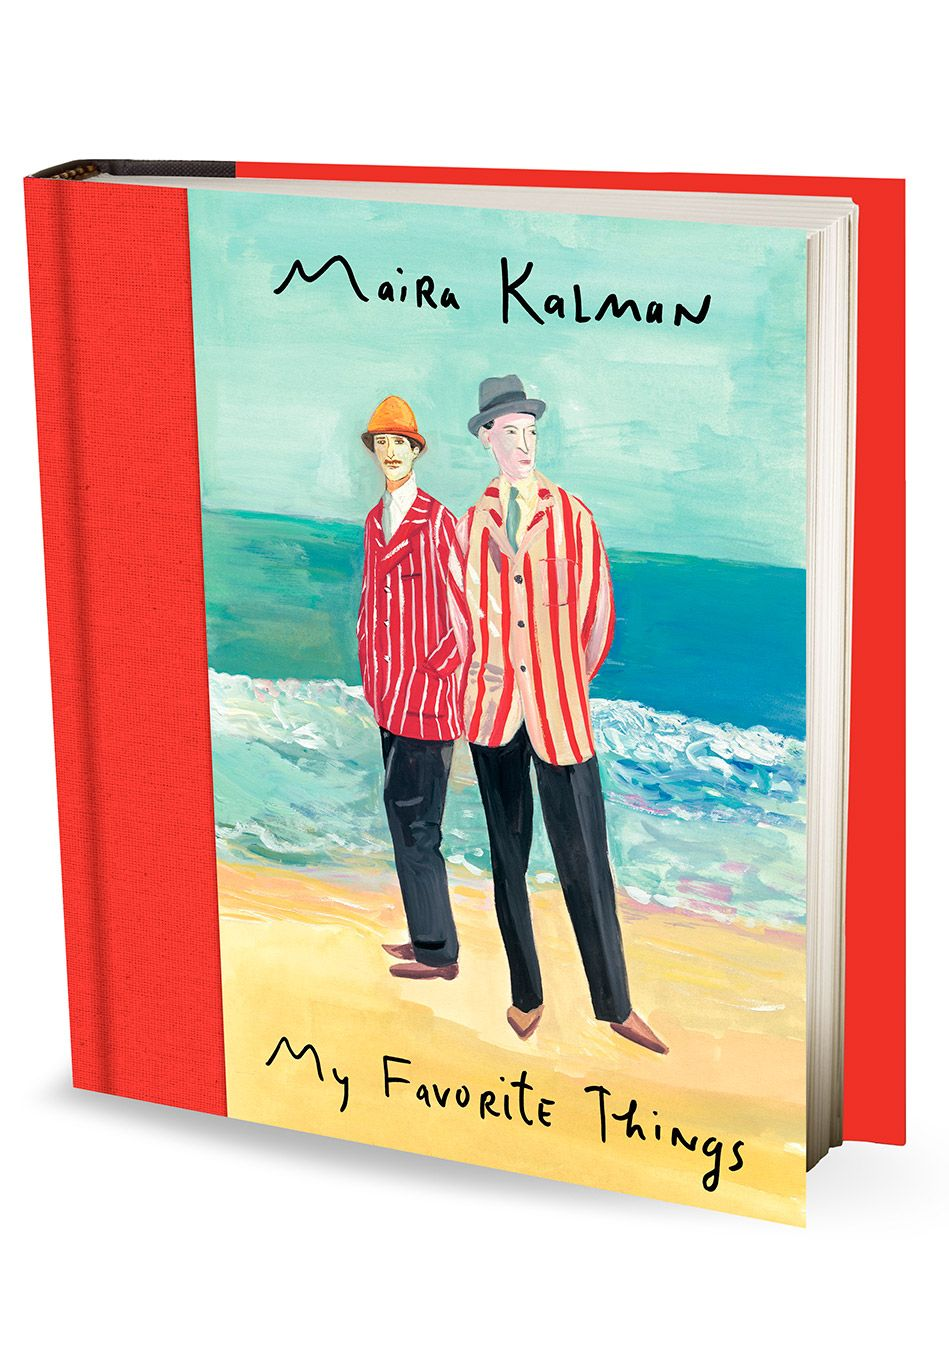 In a sense, My Favorite Things is a contemporary primer, an eclectic blend of Maira Kalman's artwork and meditations on love, memory, pleasure, and sorrow, throughout which she exhibits an extraordinary attachment to ordinary things, among them scissors, ladders, and coat-check stubs; for her, humble, utilitarian objects are suffused with poetry.